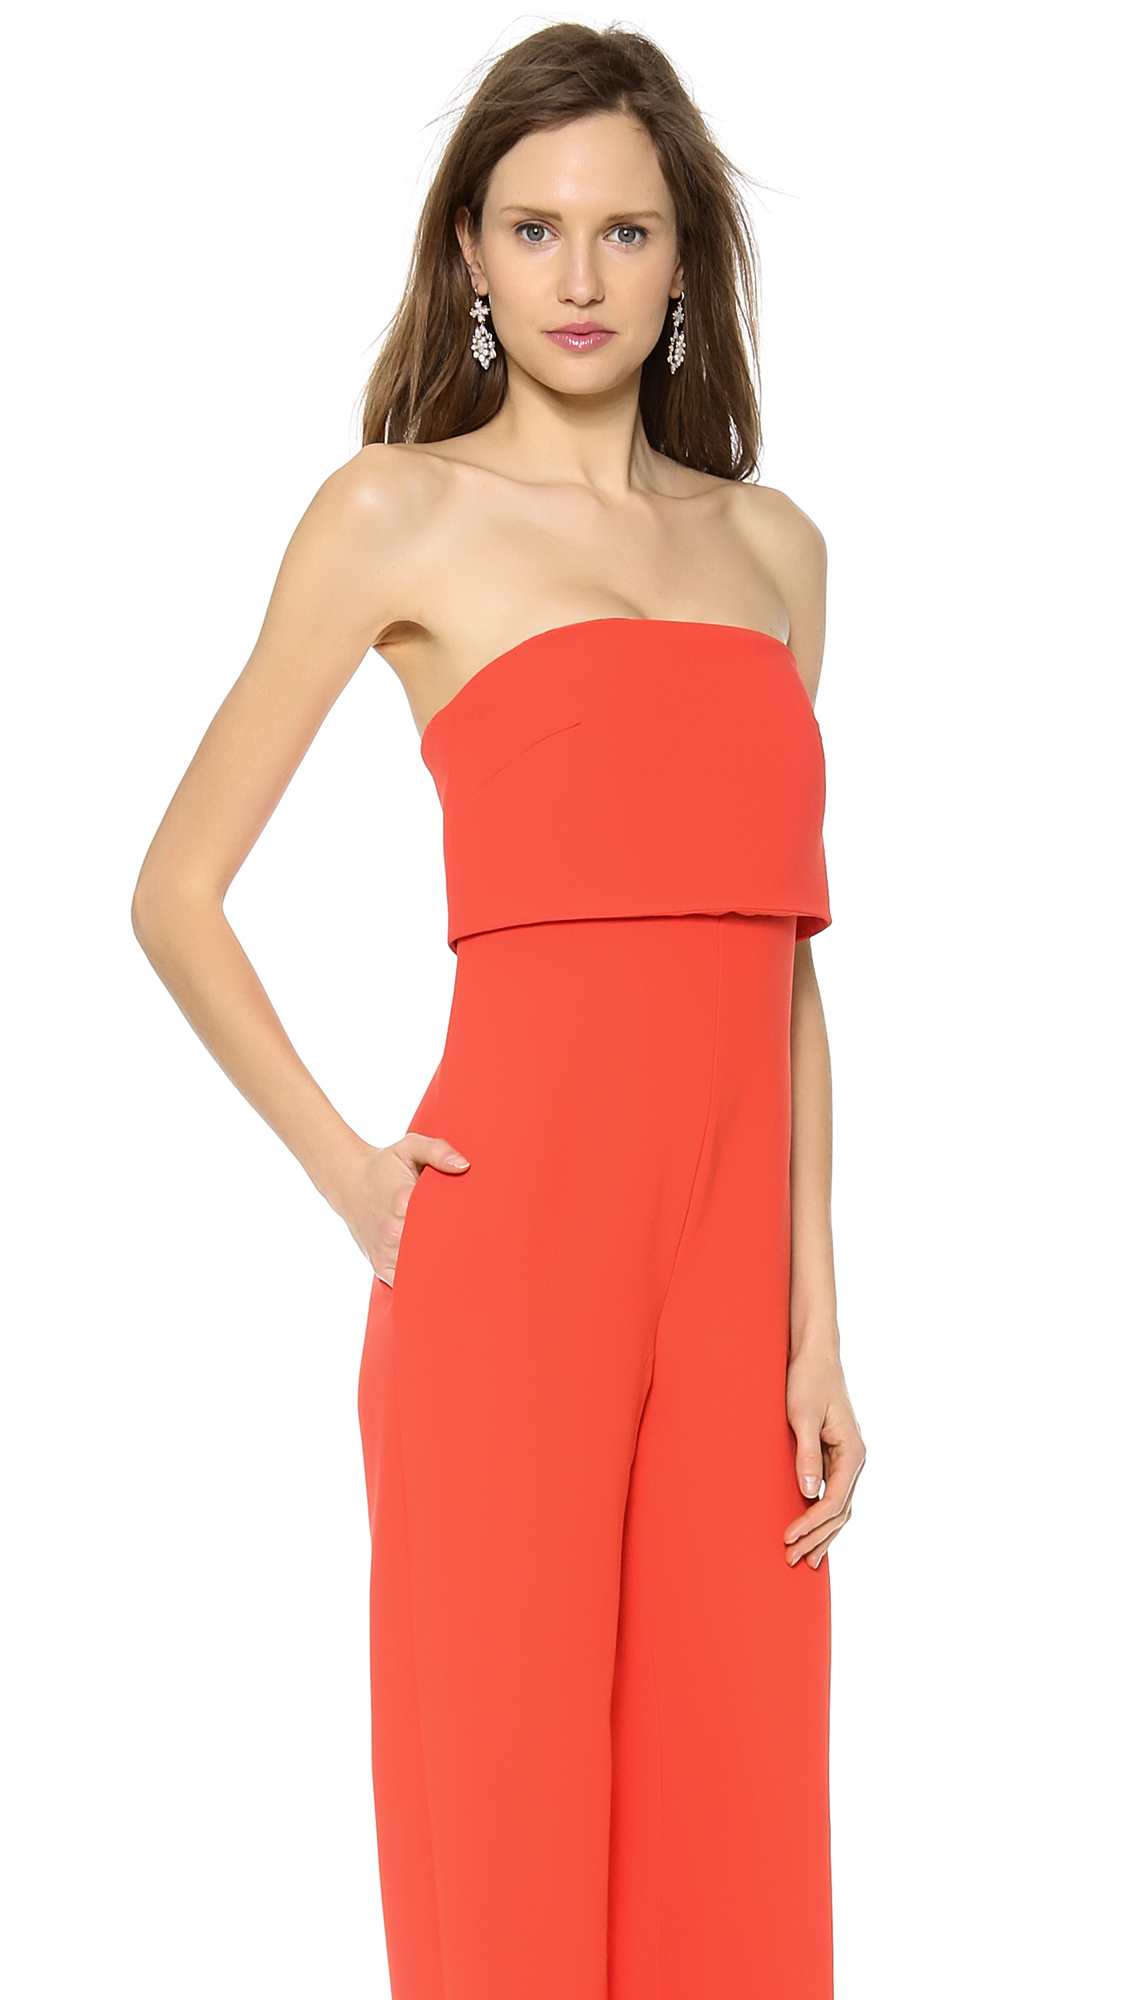 Monique lhuillier Strapless Jumpsuit Poppy in Red | Lyst